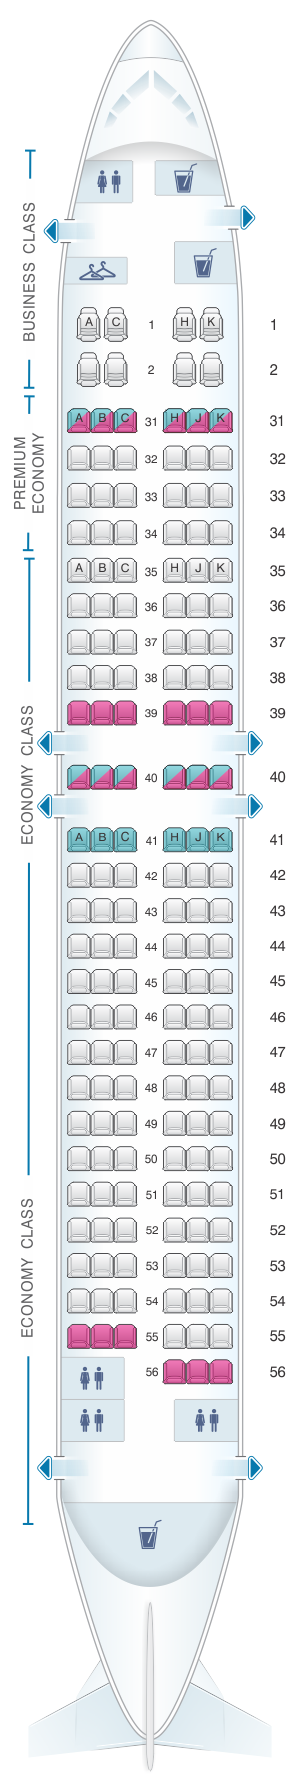 Seat map for China Southern Airlines Boeing B737 800 Layout B